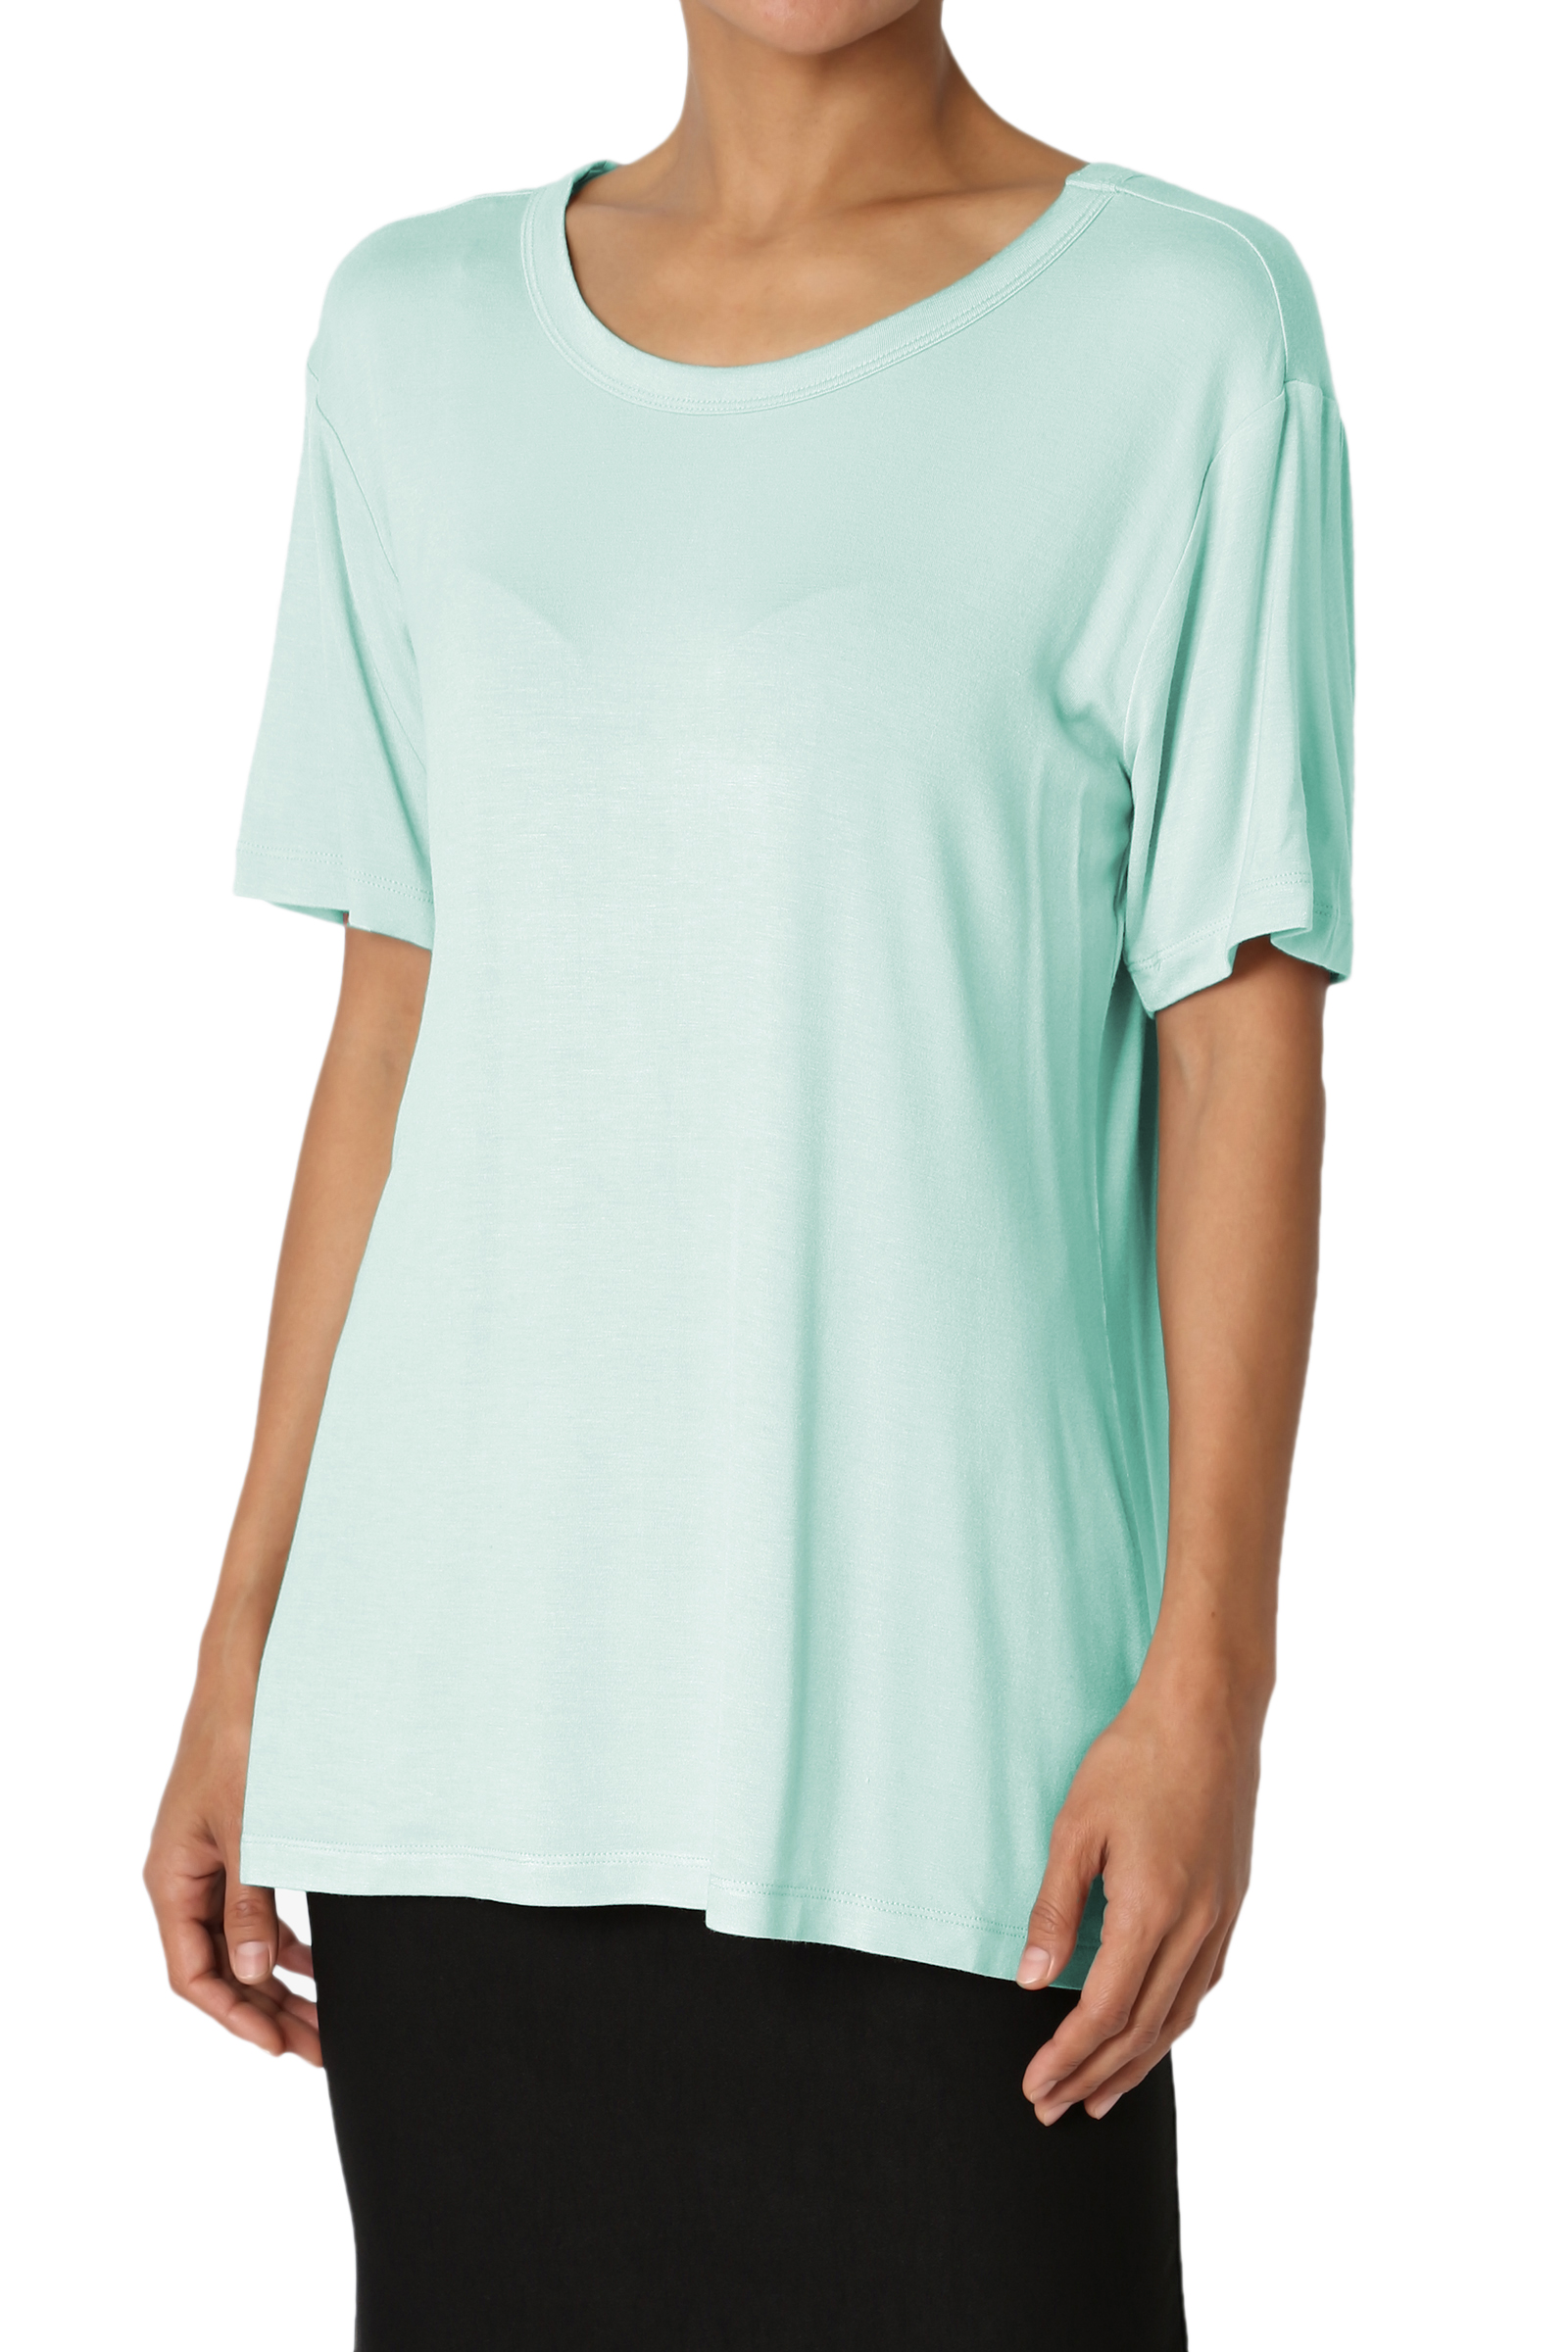 TheMogan Women's Loose Relaxed Fit Short Sleeve Jersey T-Shirts Dusty Mint L